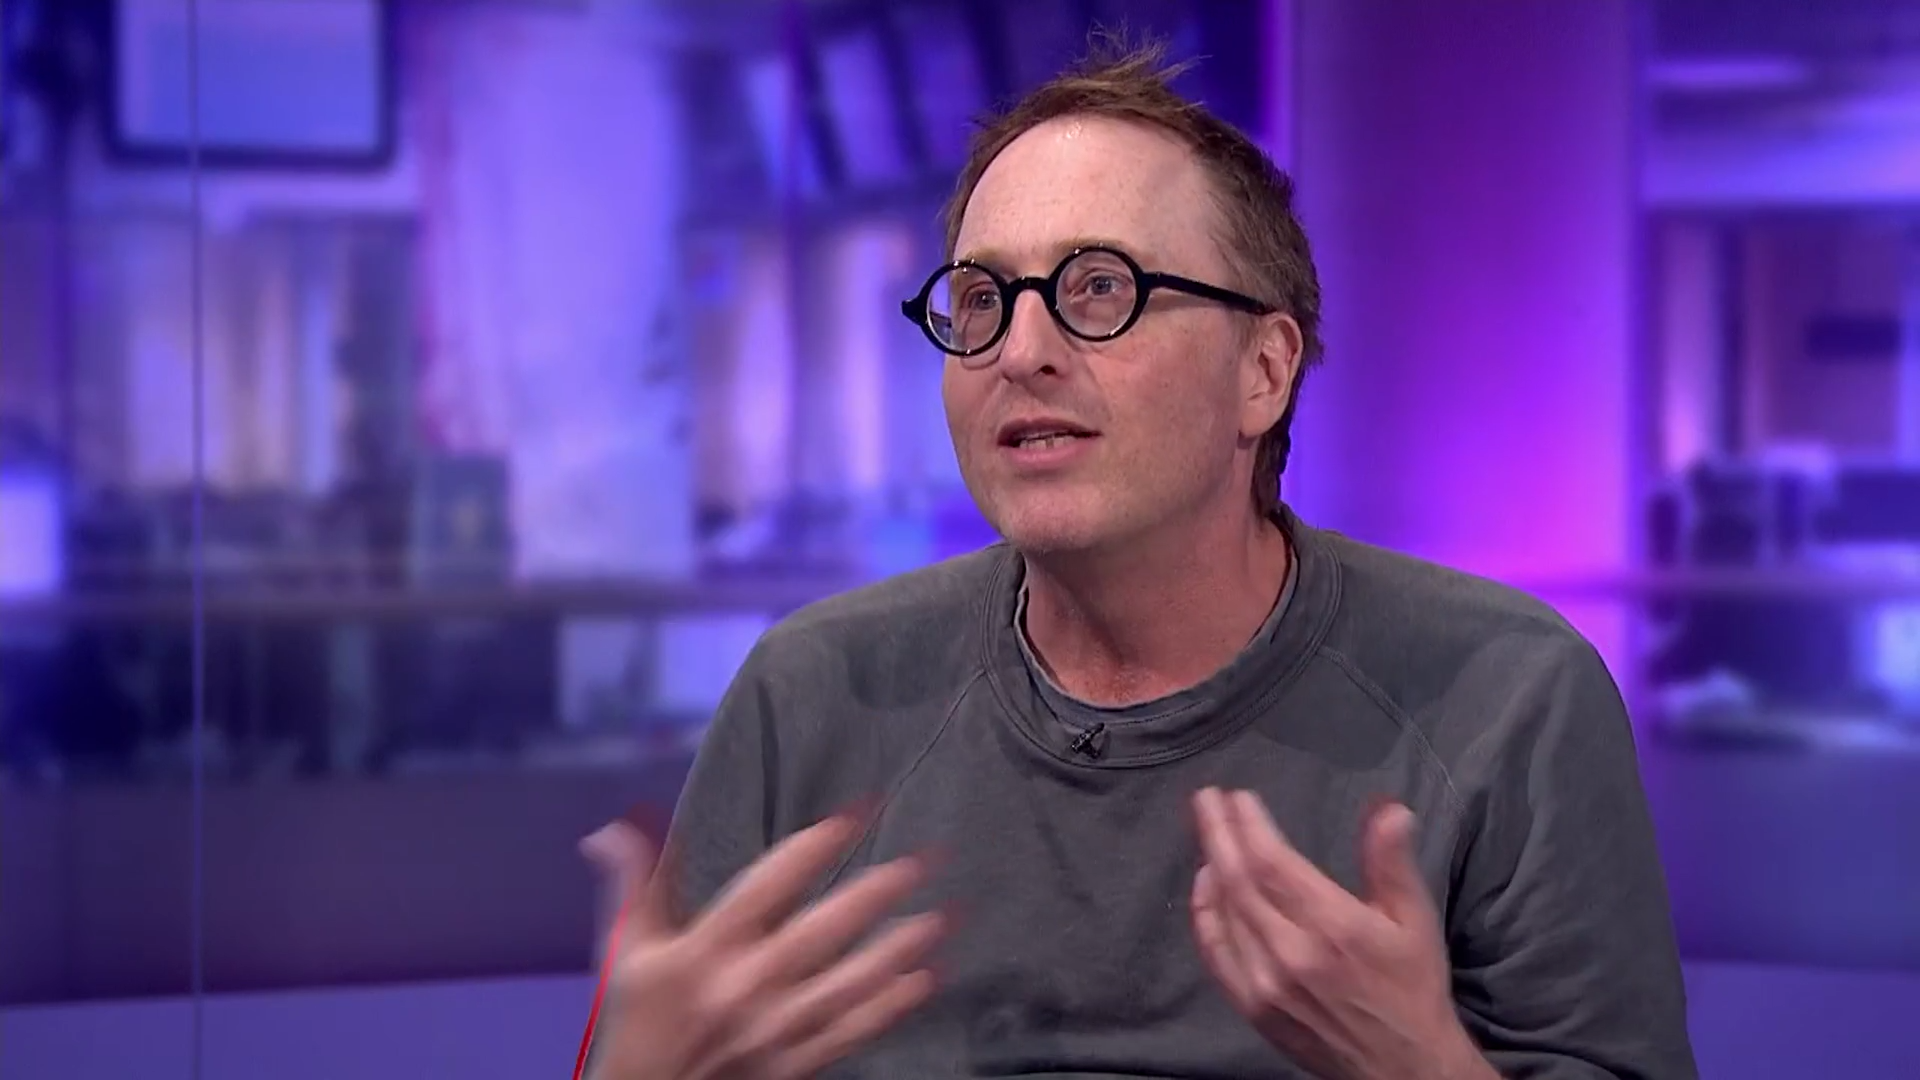 Jon Ronson: 'Shows like Jeremy Kyle are very much behind the time about stigmatising mental health issues'